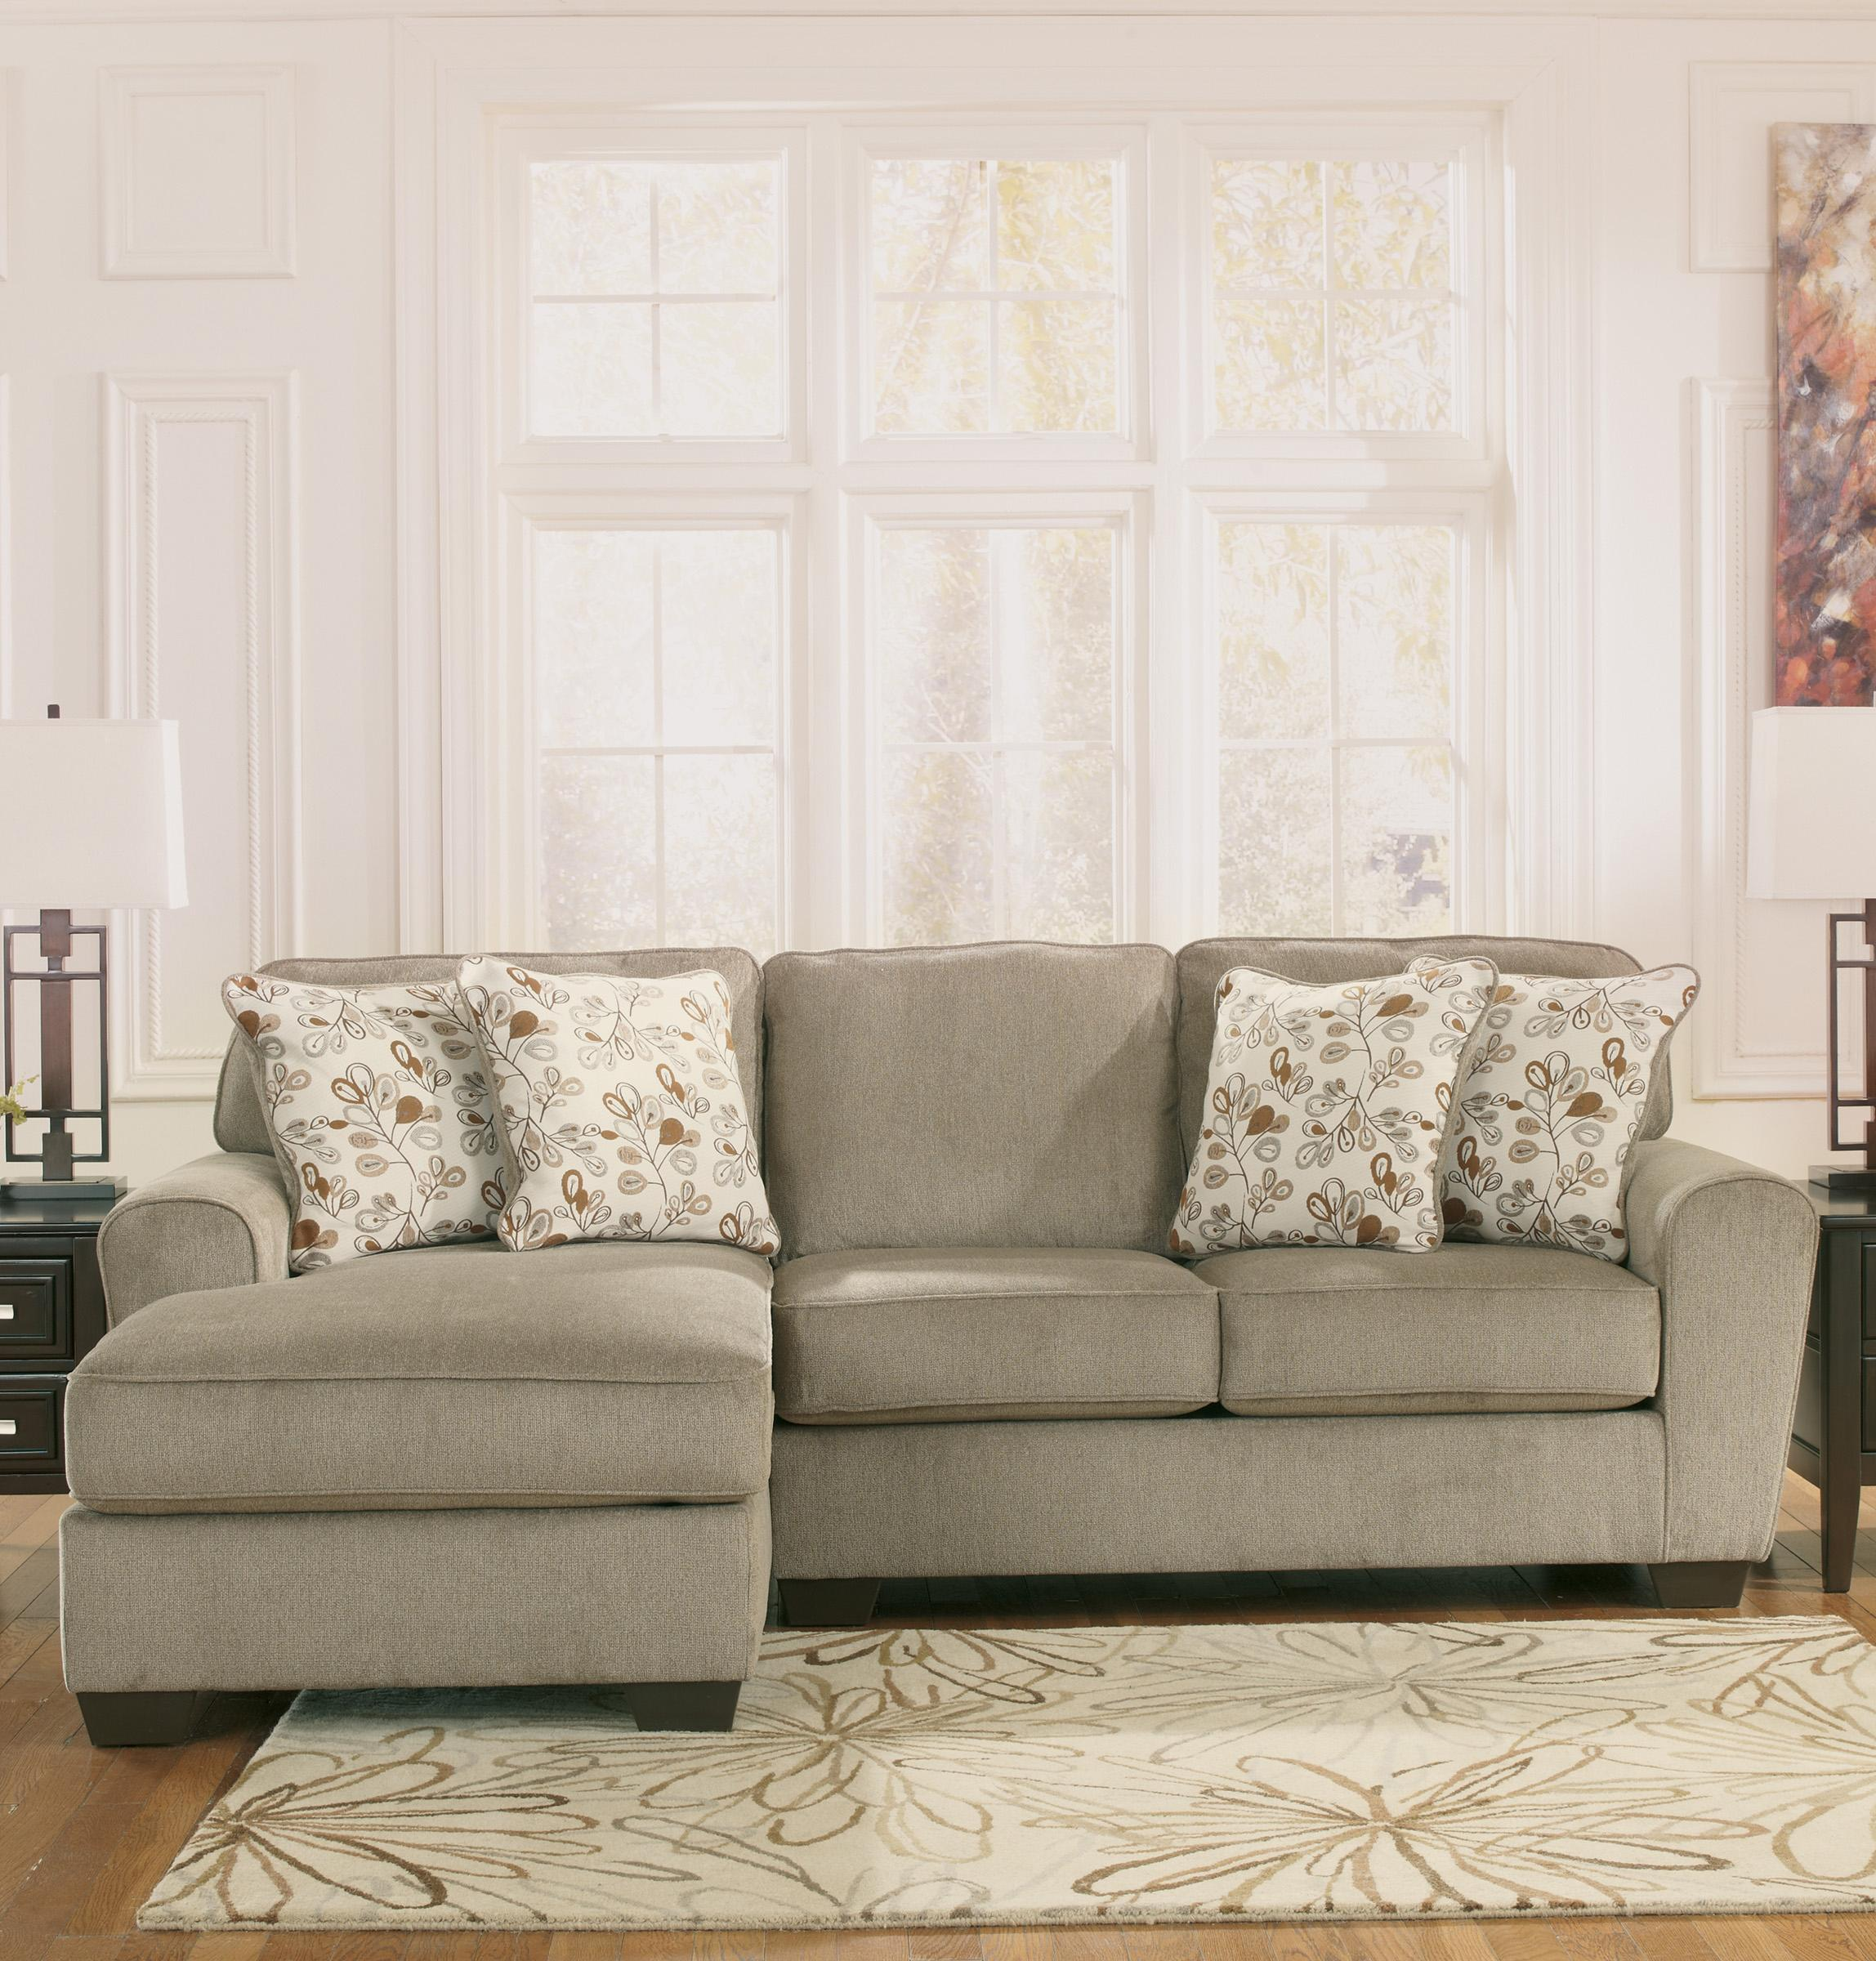 Patola Park - Patina 2-Piece Sectional with Left Chaise by Ashley Furniture at Lapeer Furniture & Mattress Center